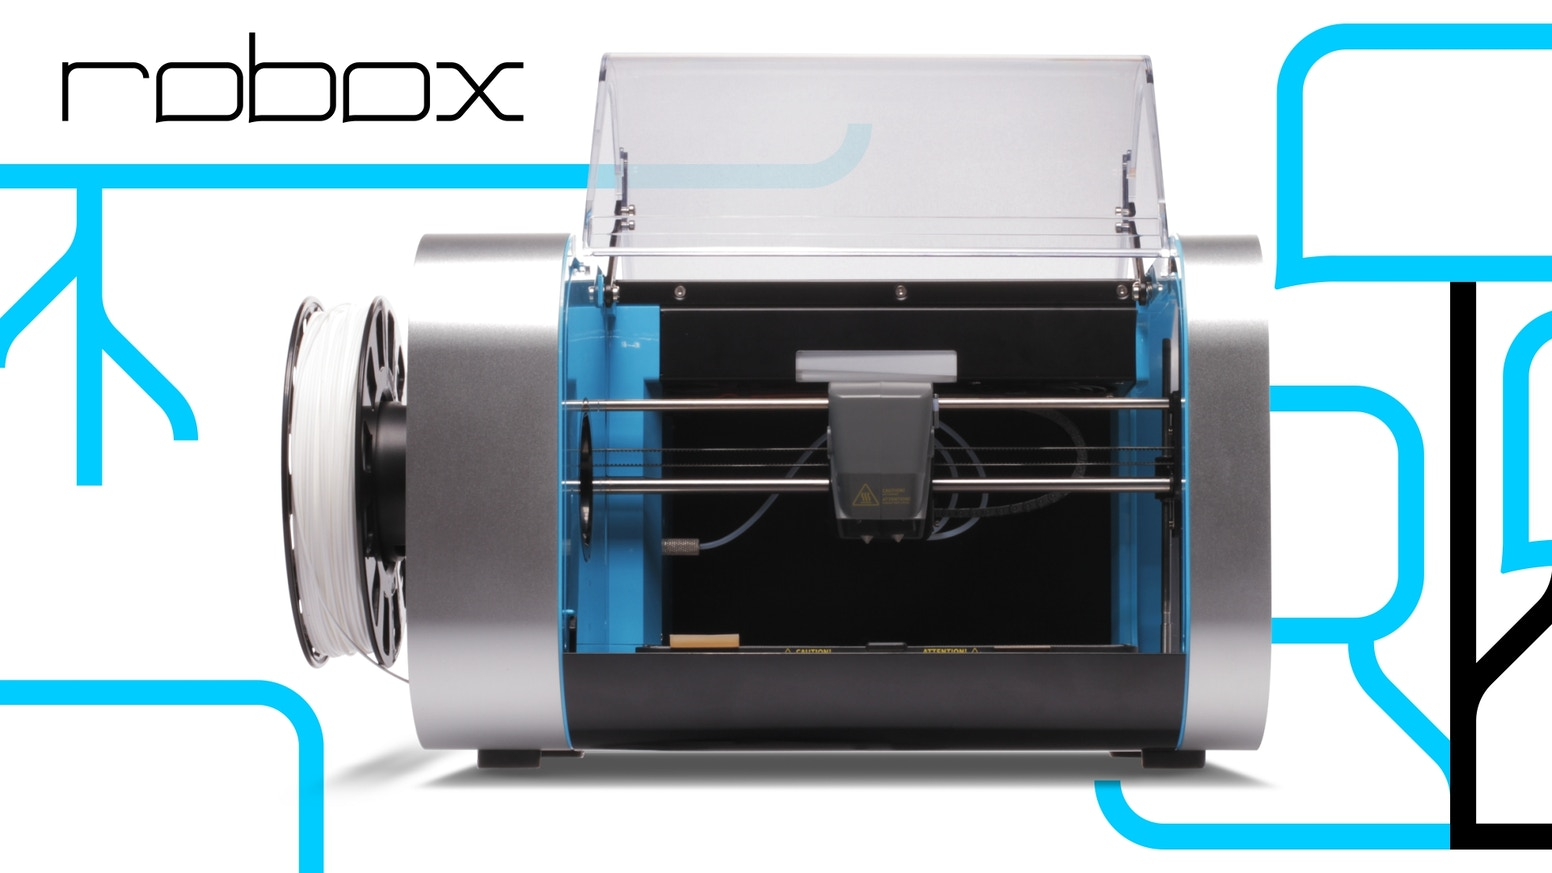 Root, Tree And Mote For Robox® Micro-manufacturing